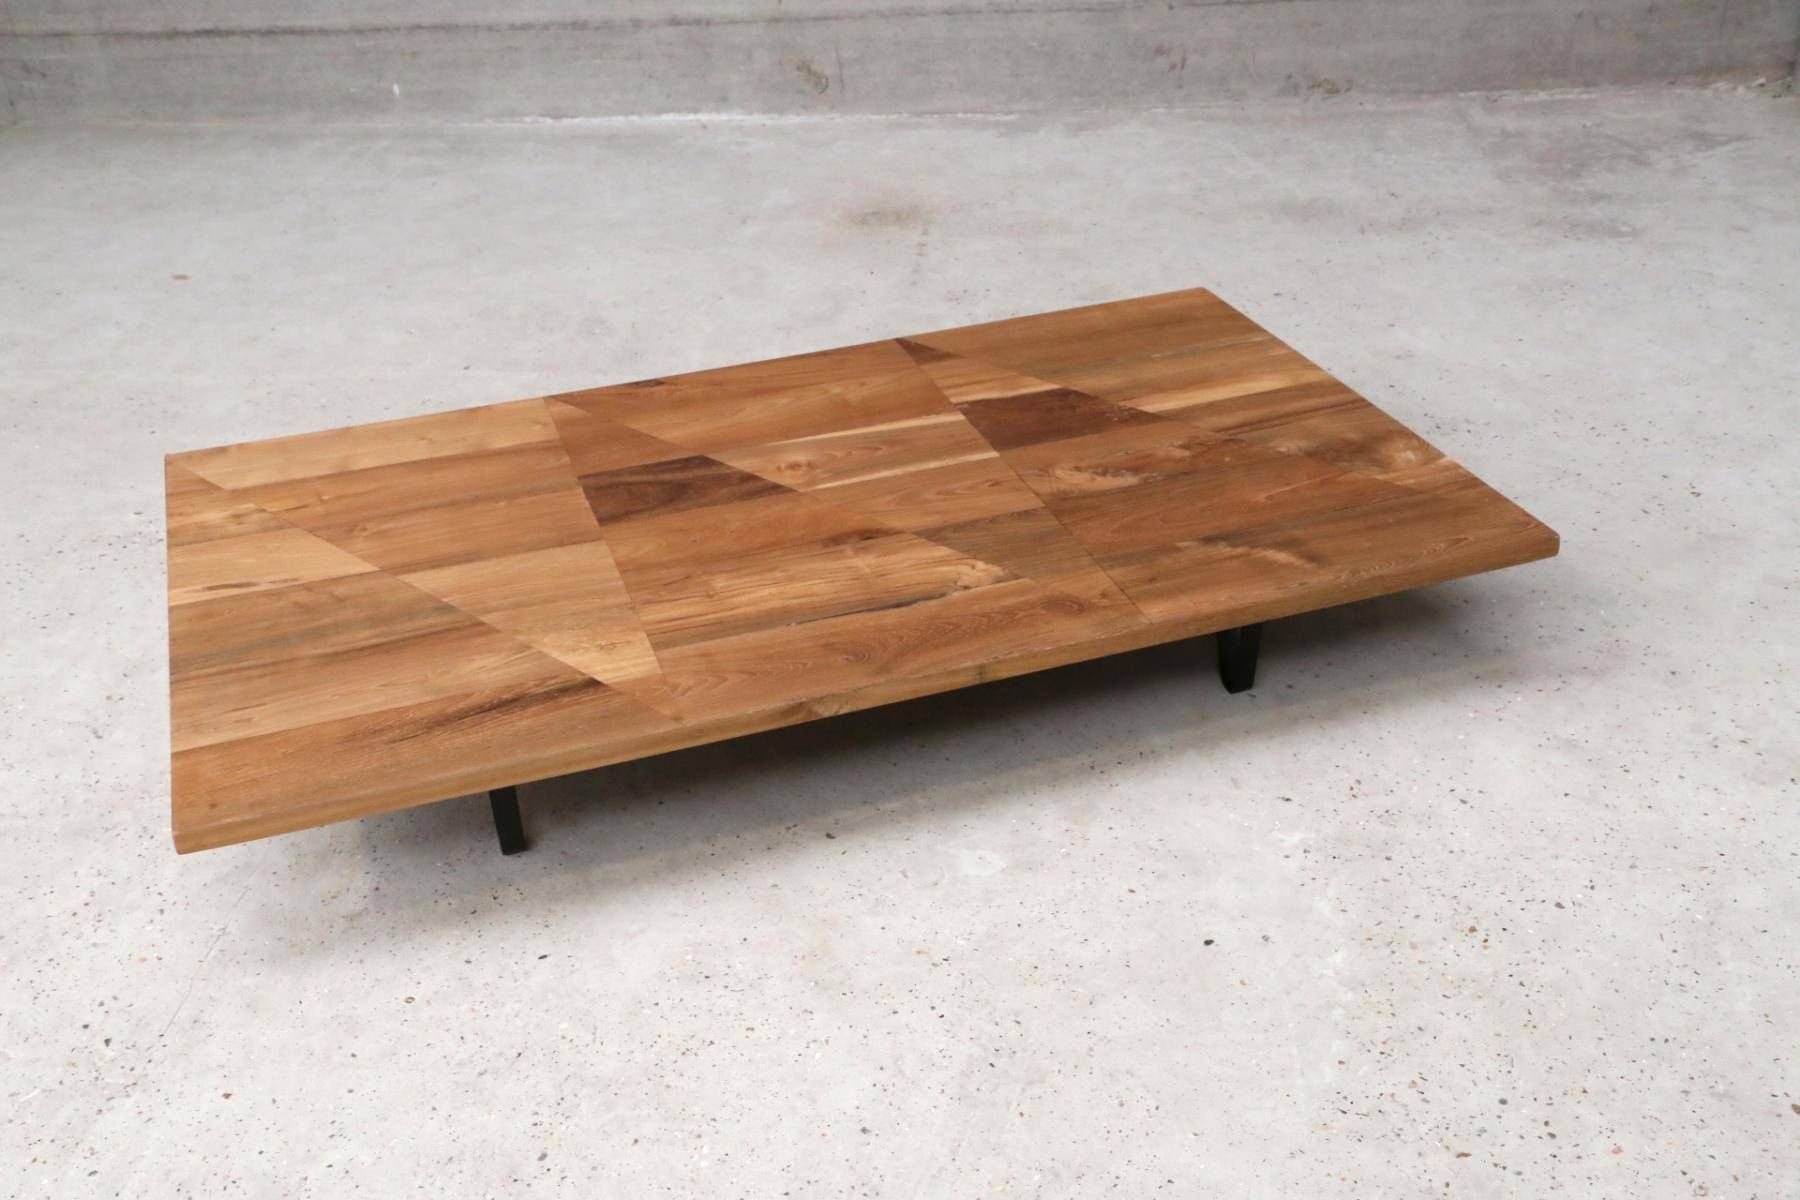 Large Low Coffee Table Tables Wooden Transformed Into Working / Thippo In Large Low Coffee Tables (View 3 of 15)